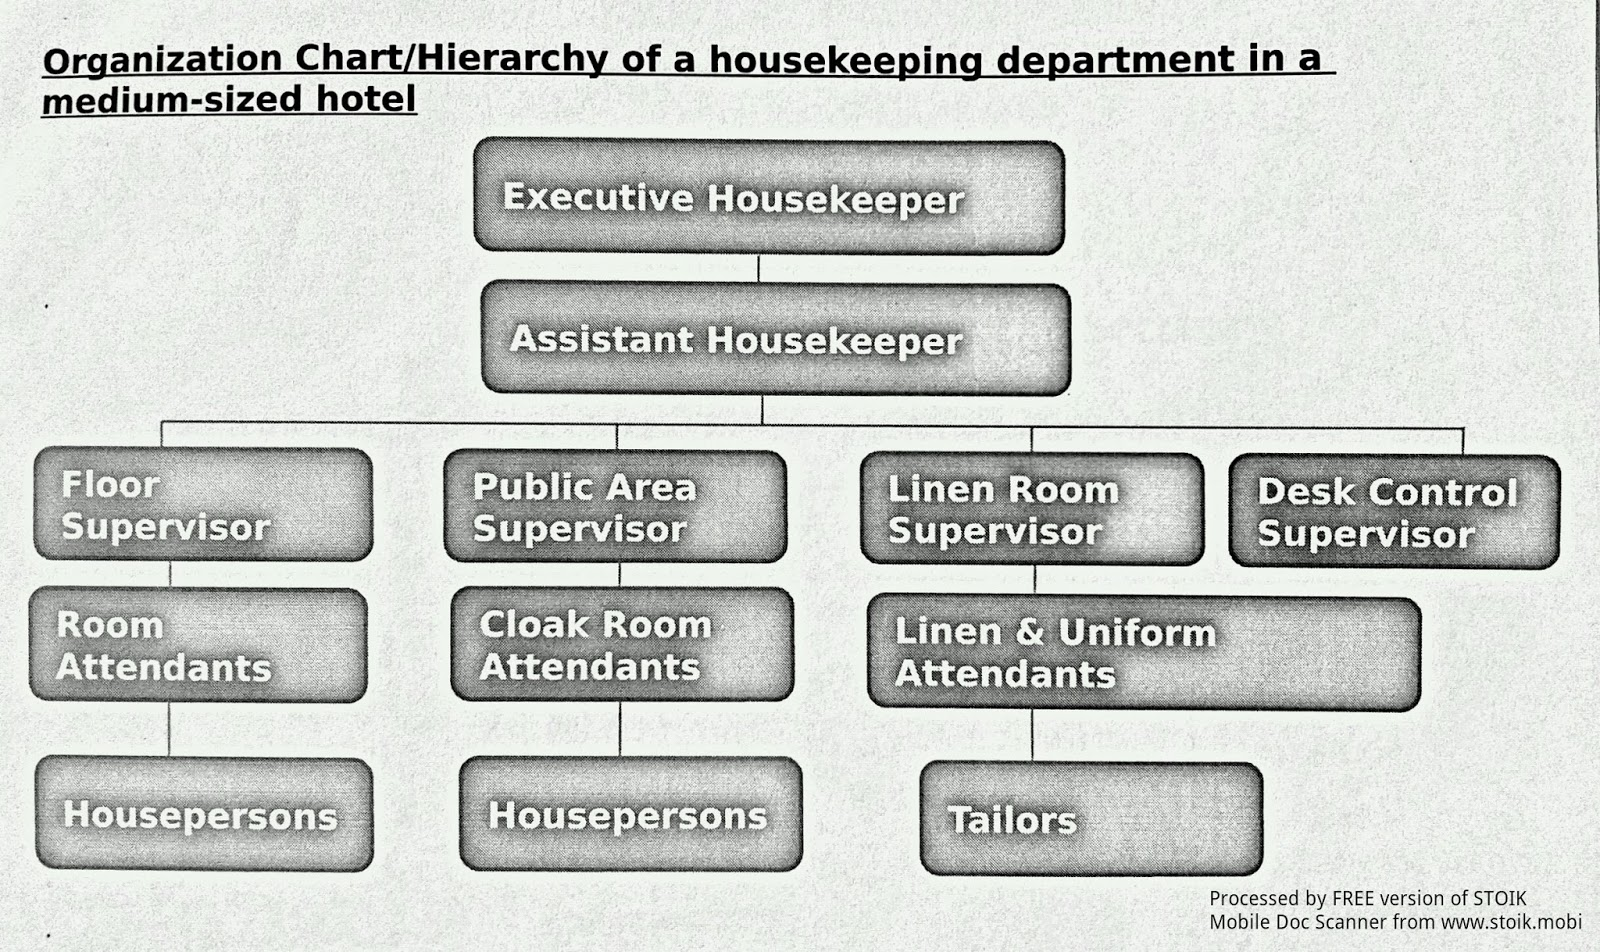 housekeeping deprtment chart picturte in hotl: House keeping notes organizational structure of h k department